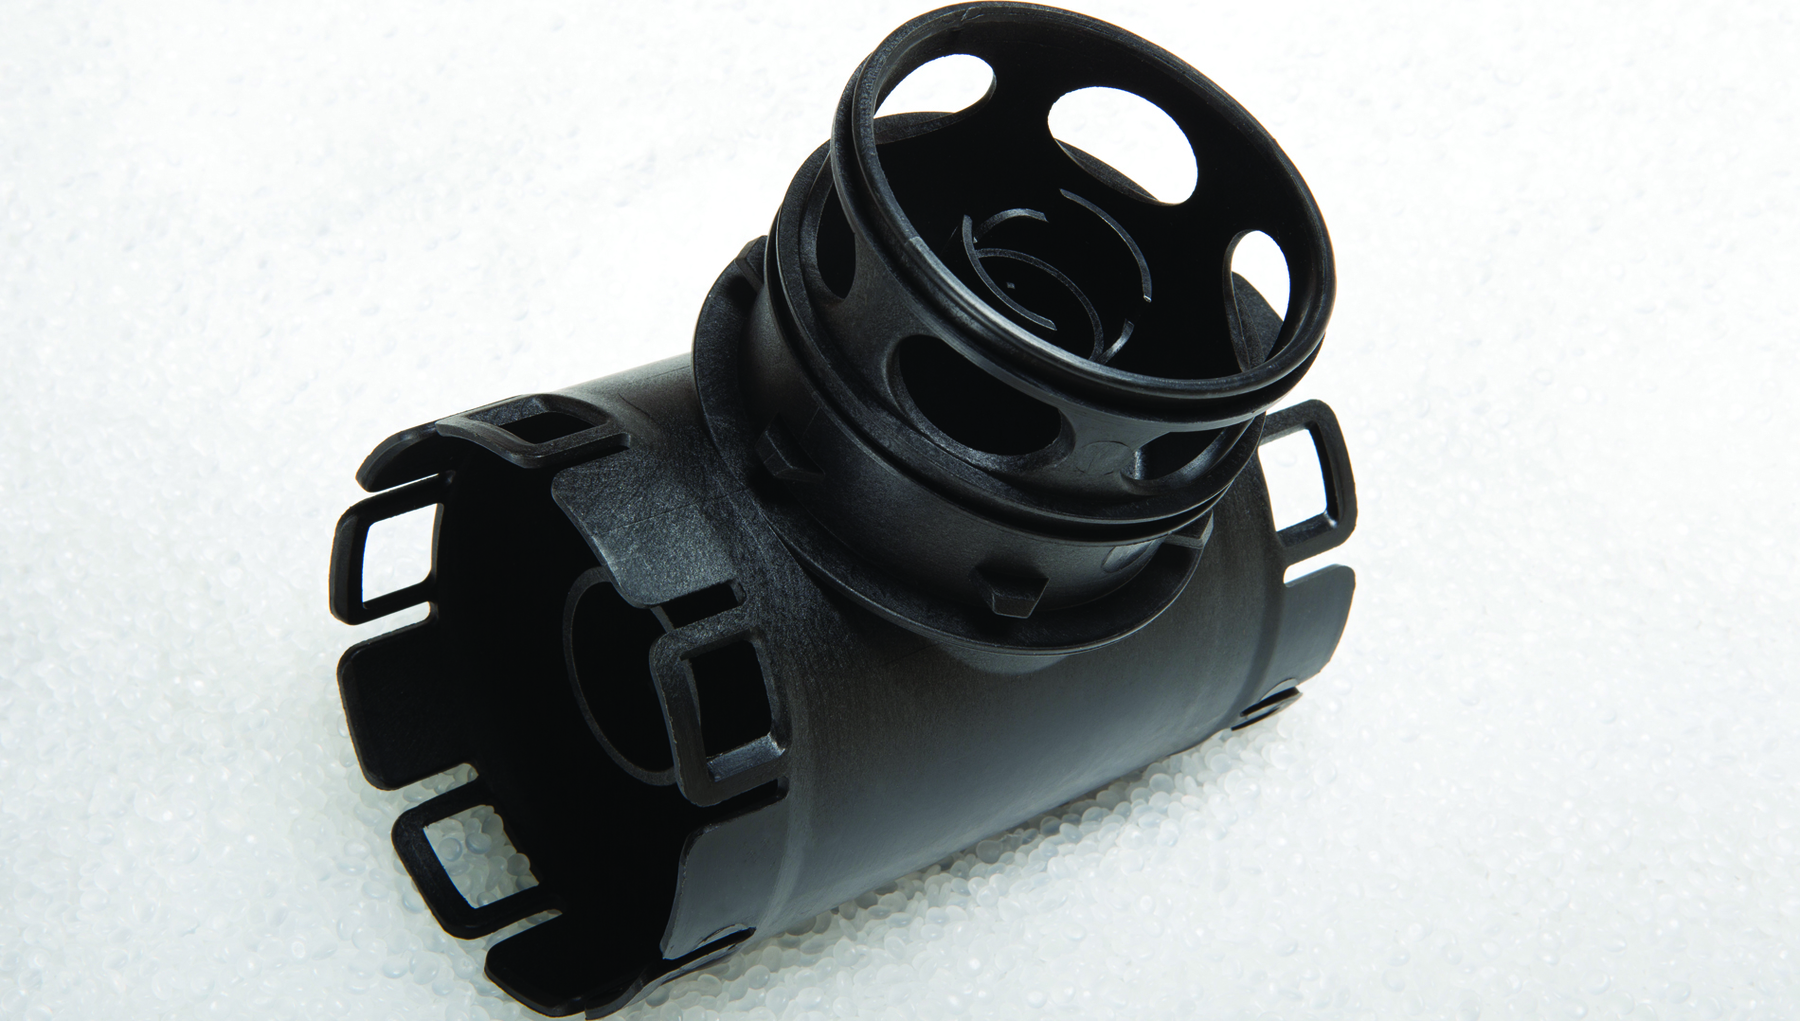 Injection moulded part